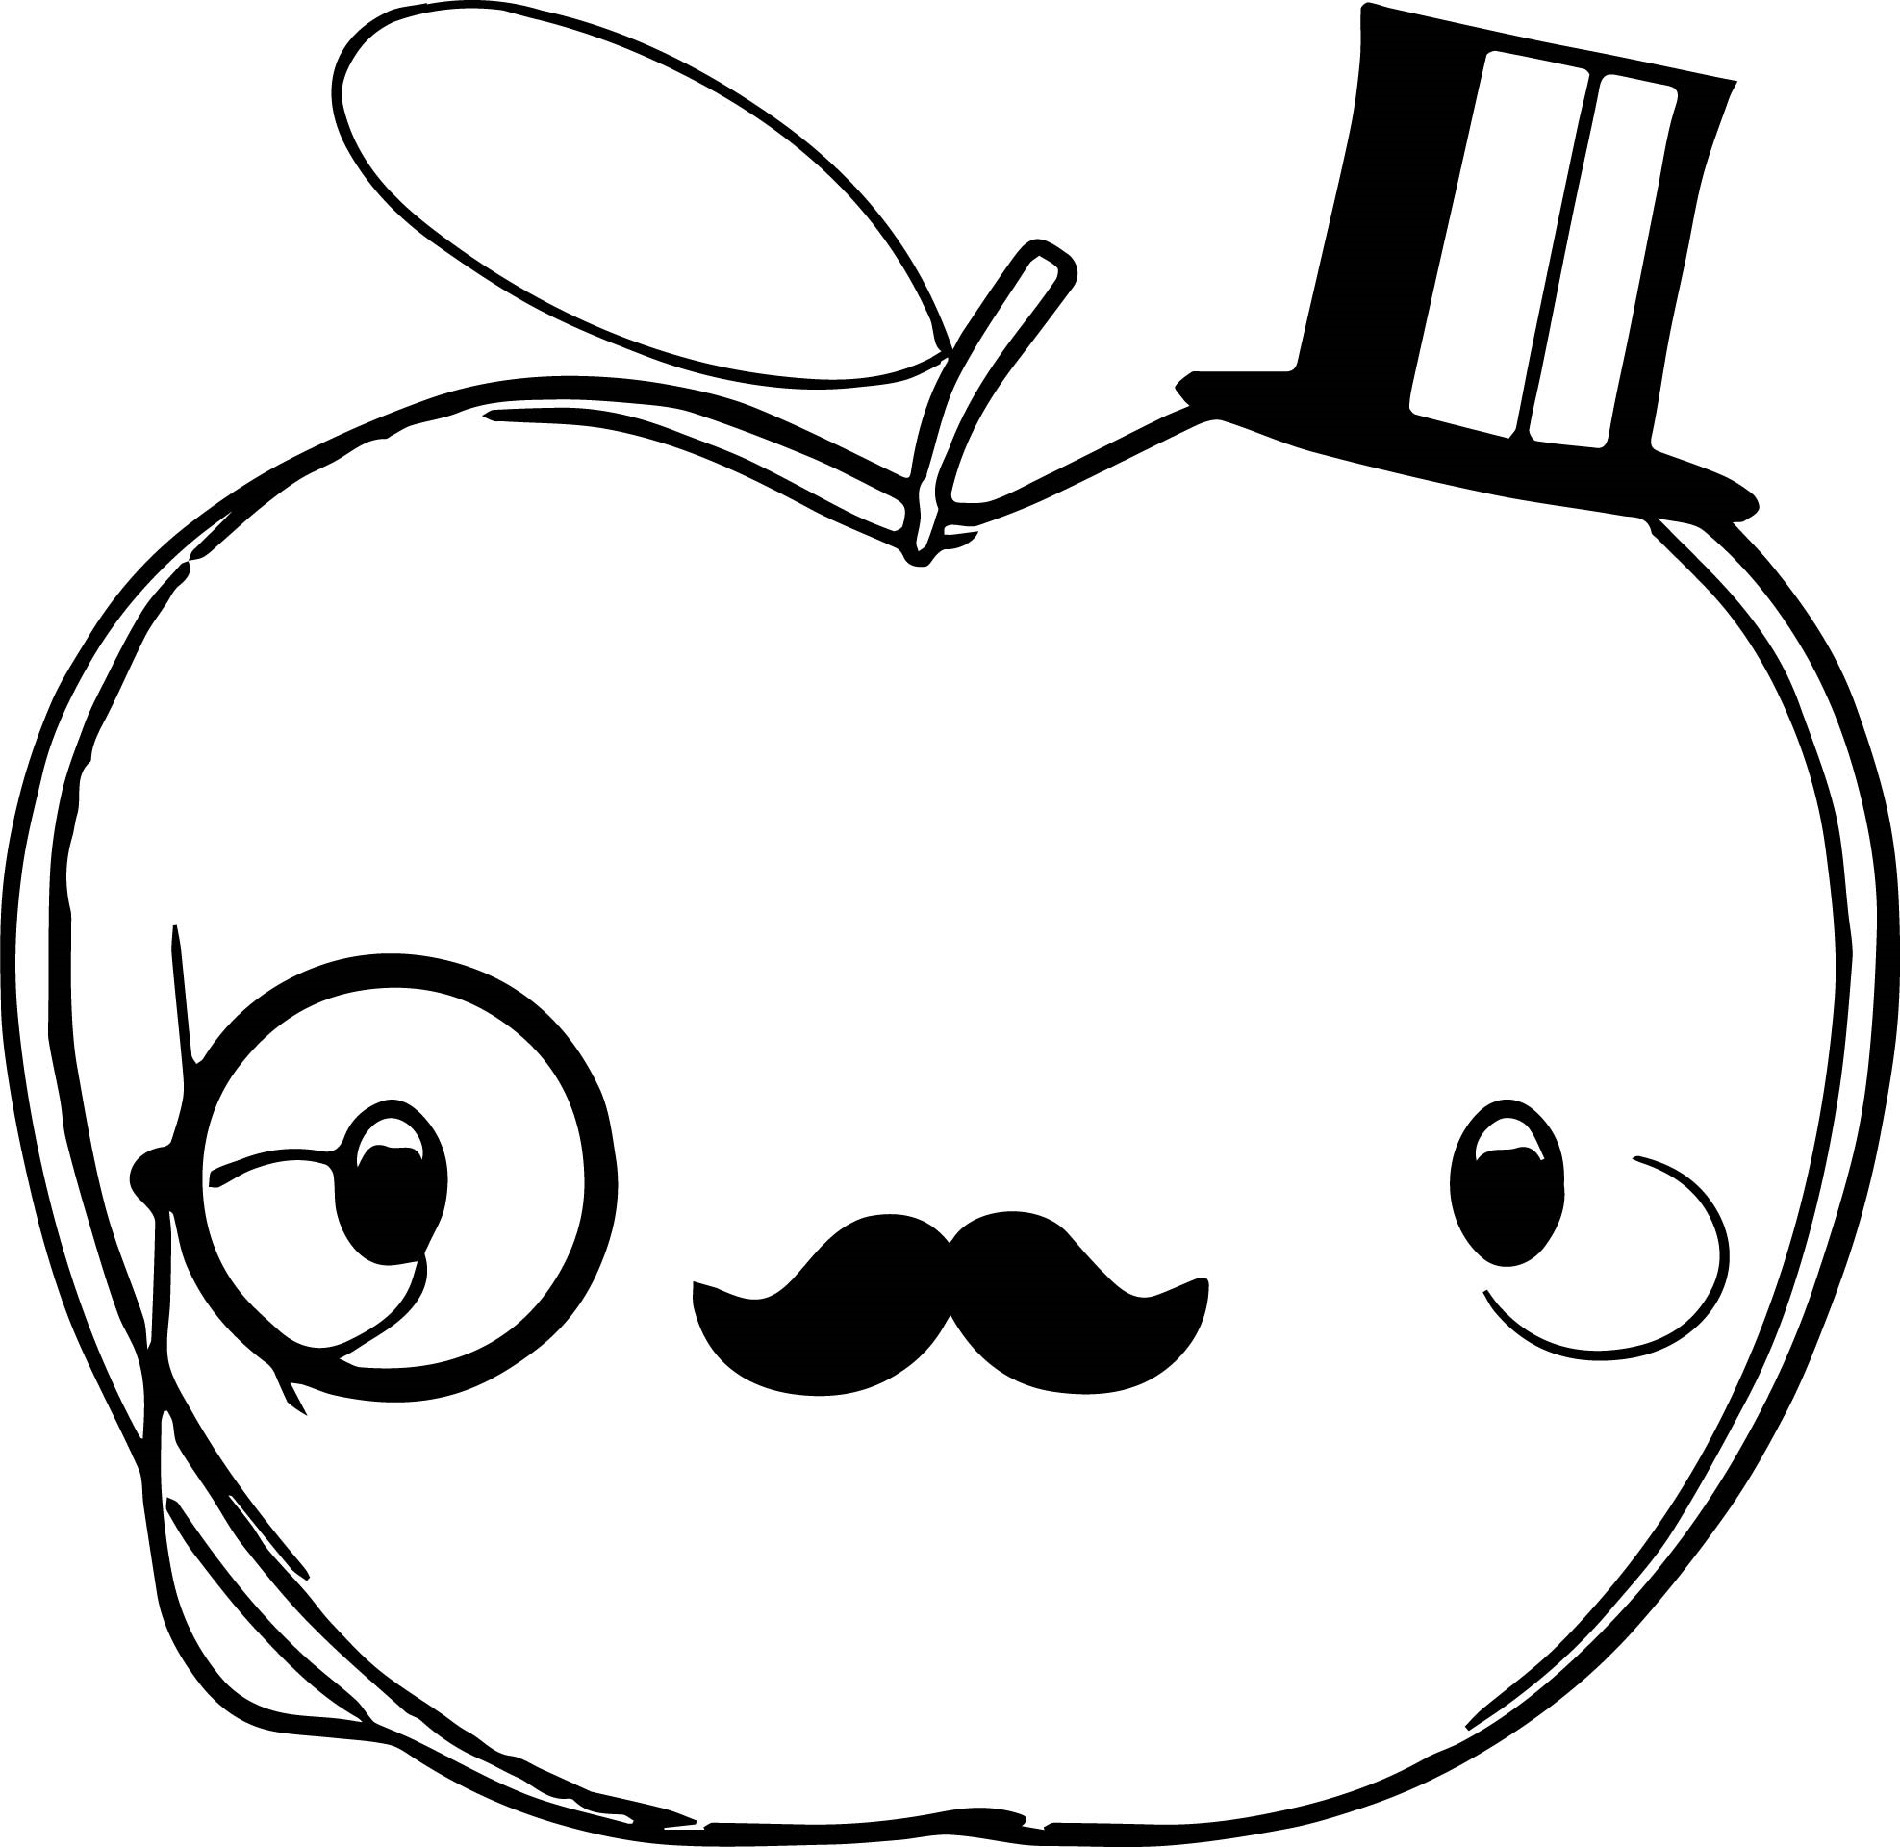 coloring image of an apple free apple tracing stencil apple clip art apple image of apple coloring an